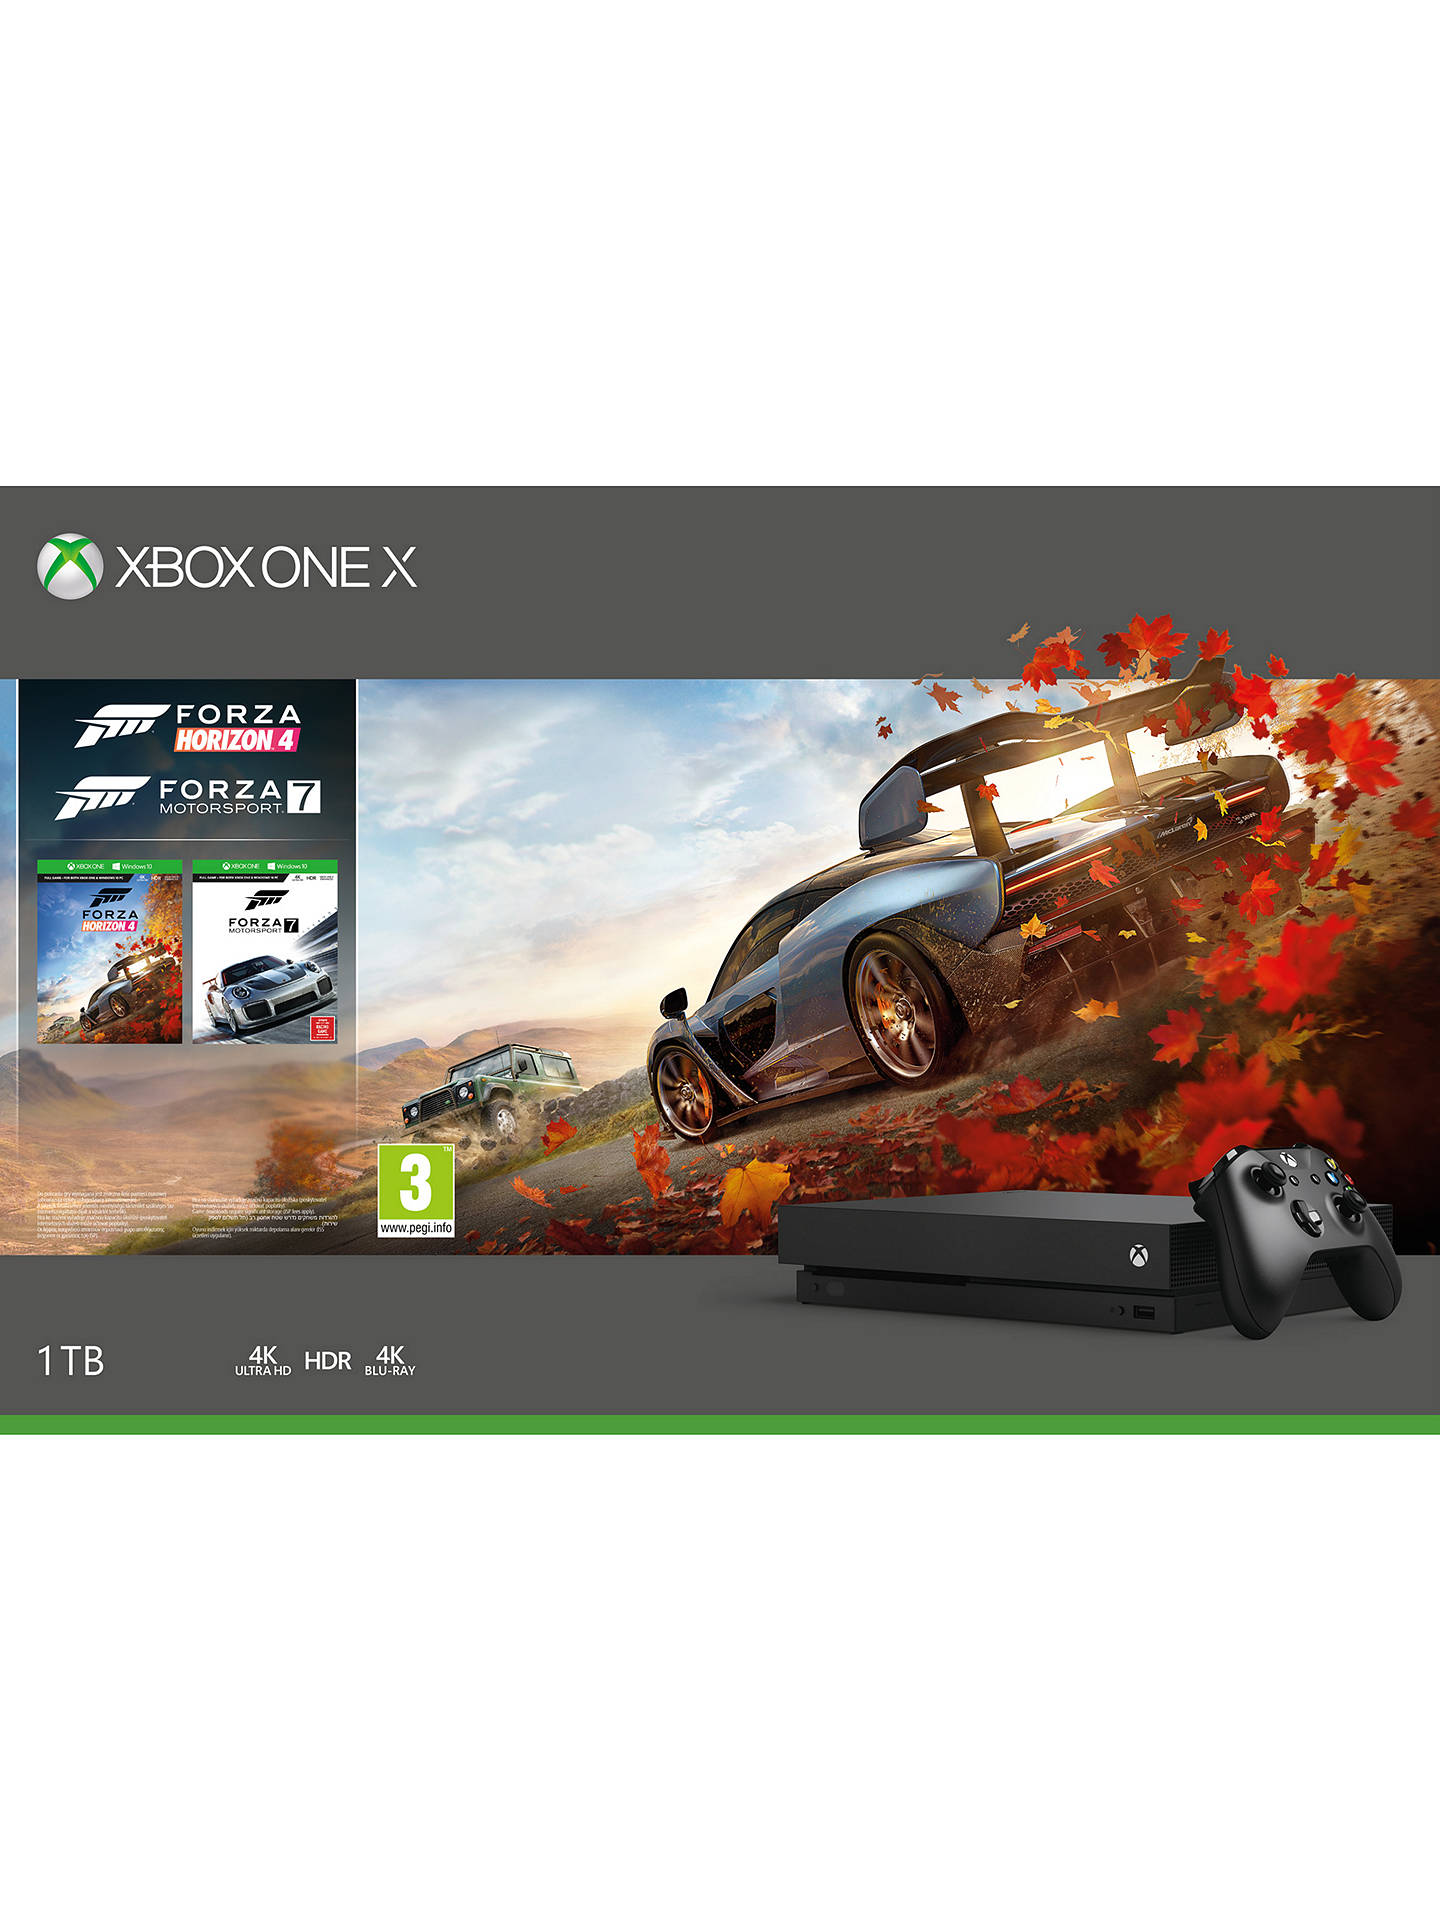 microsoft xbox one x console 1tb with wireless. Black Bedroom Furniture Sets. Home Design Ideas